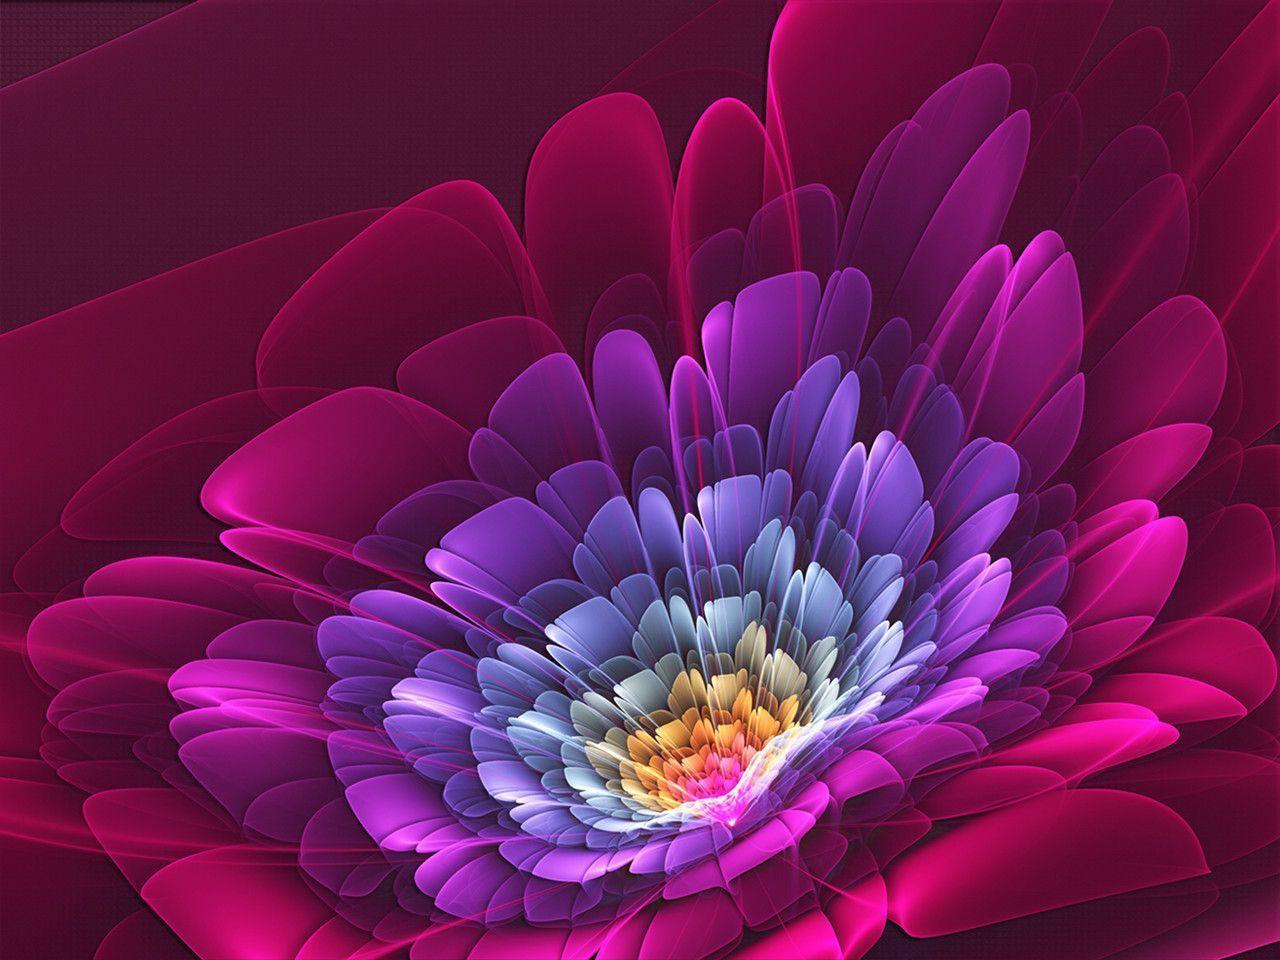 aquarius flower wallpaper hd - photo #29